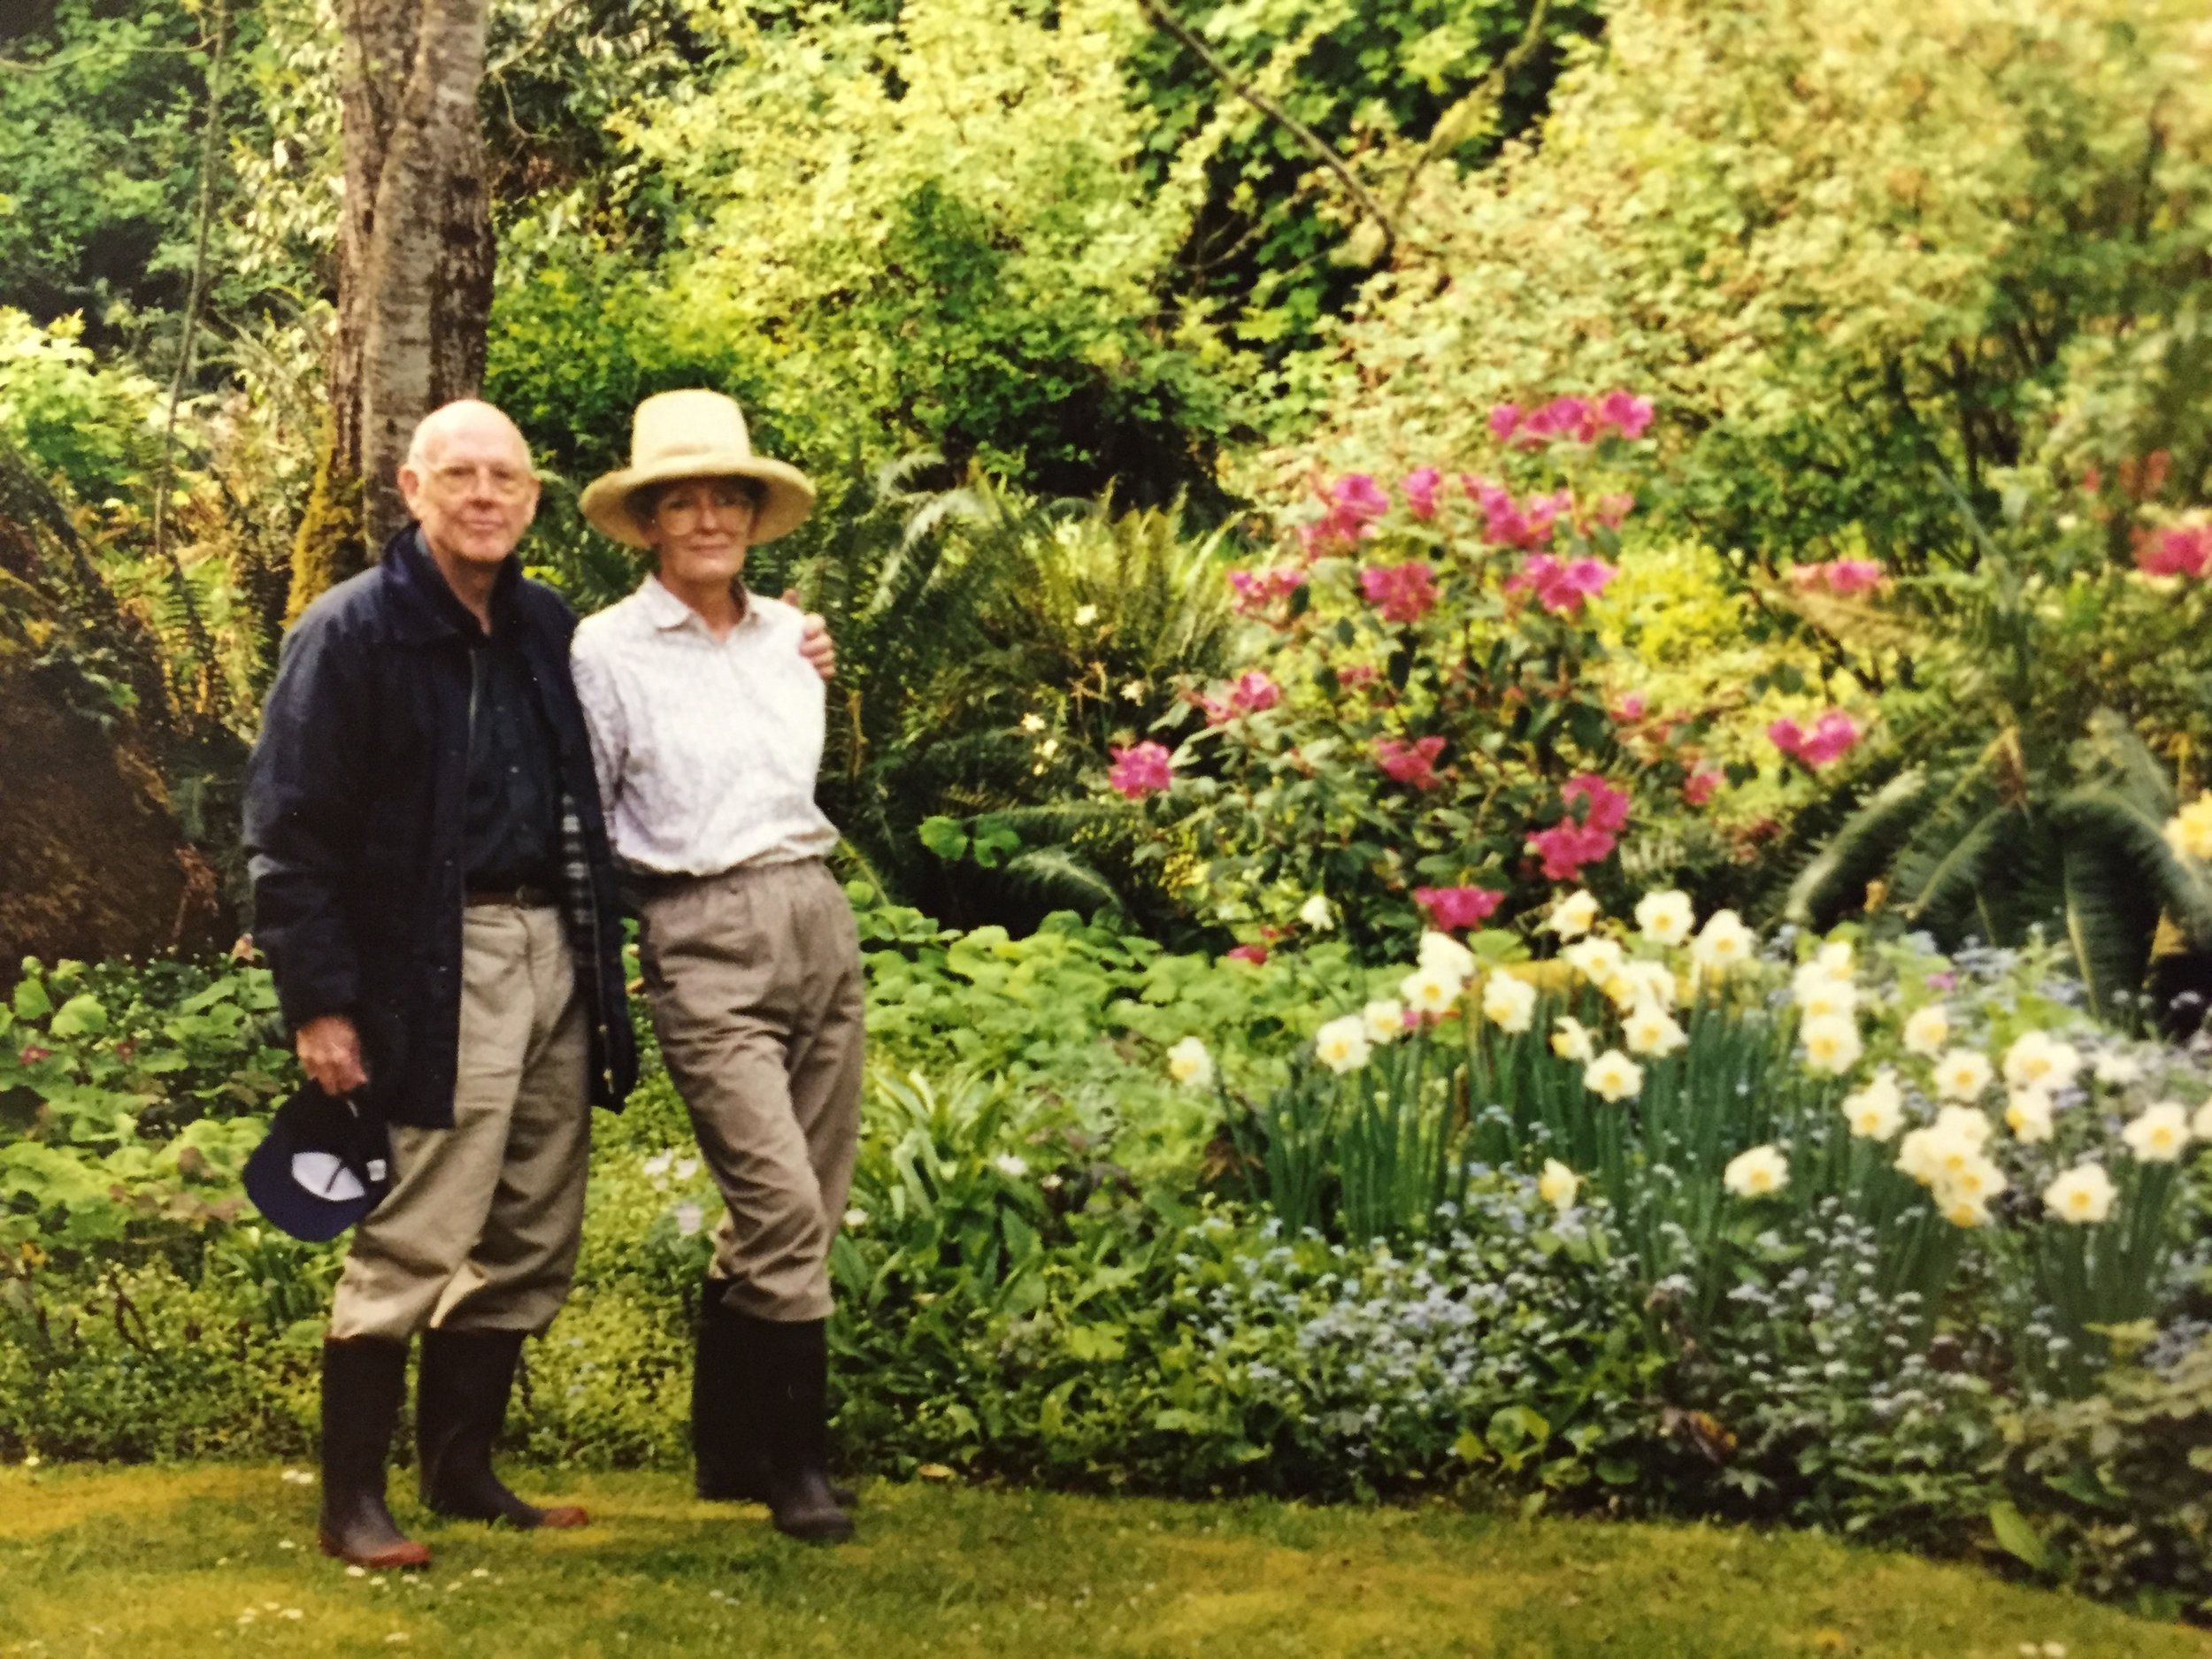 Brian and Sarah McLoughlin in the garden in 1998.